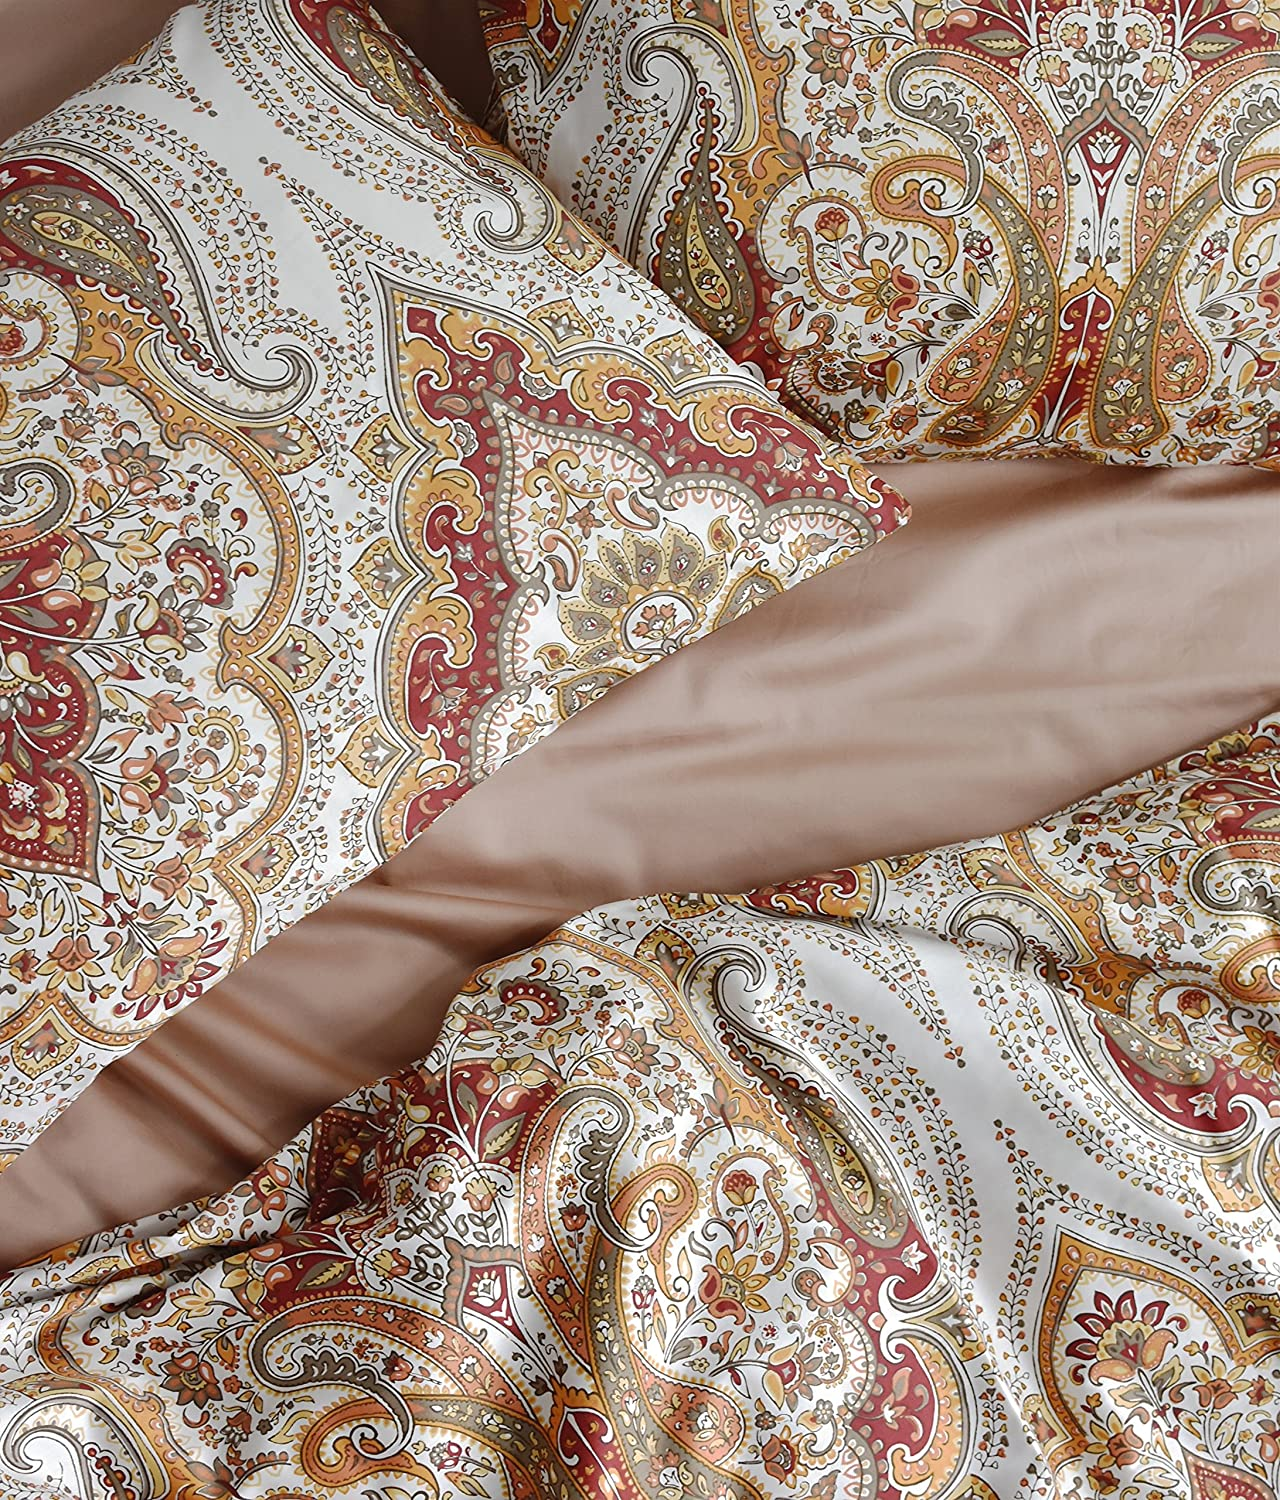 Tahari Home Duvet Quilt Cover Bohemian Style Mgoldccan Paisley Damask Medallion Print Cotton Sateen 3 Piece Bedding Set (Queen, Rust Copper)